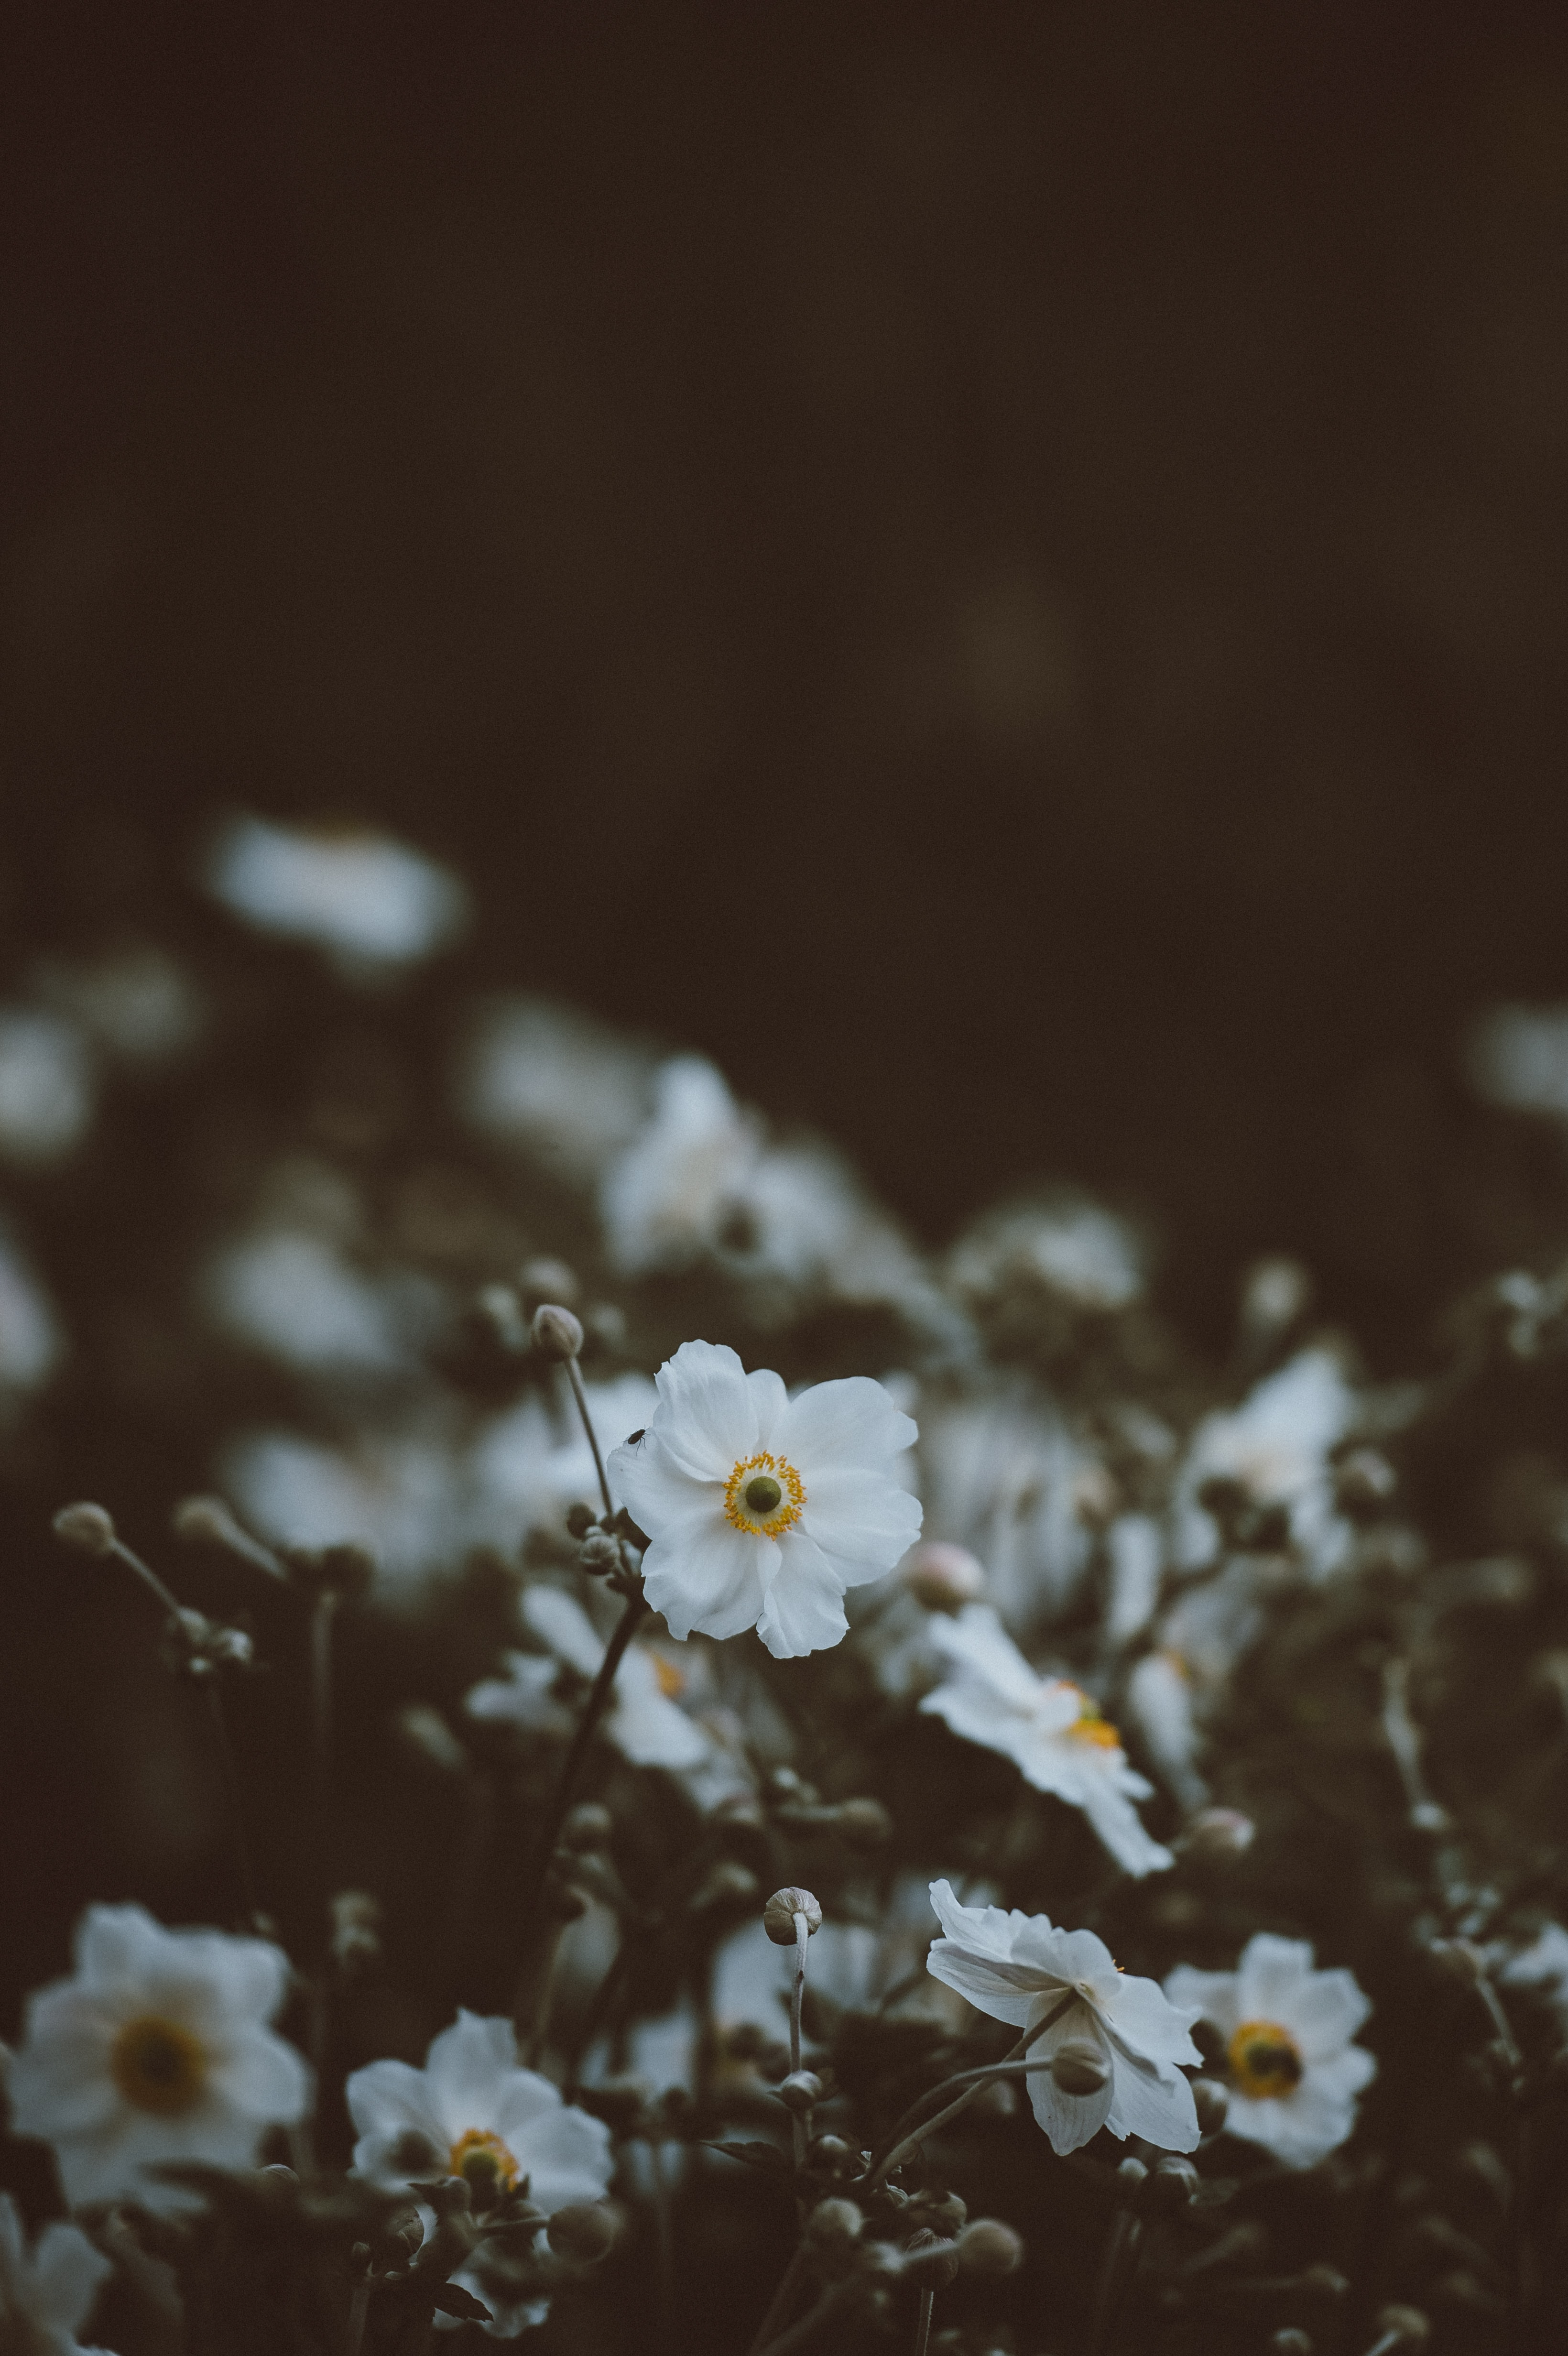 selective focus photo of bloomed white petaled flowers